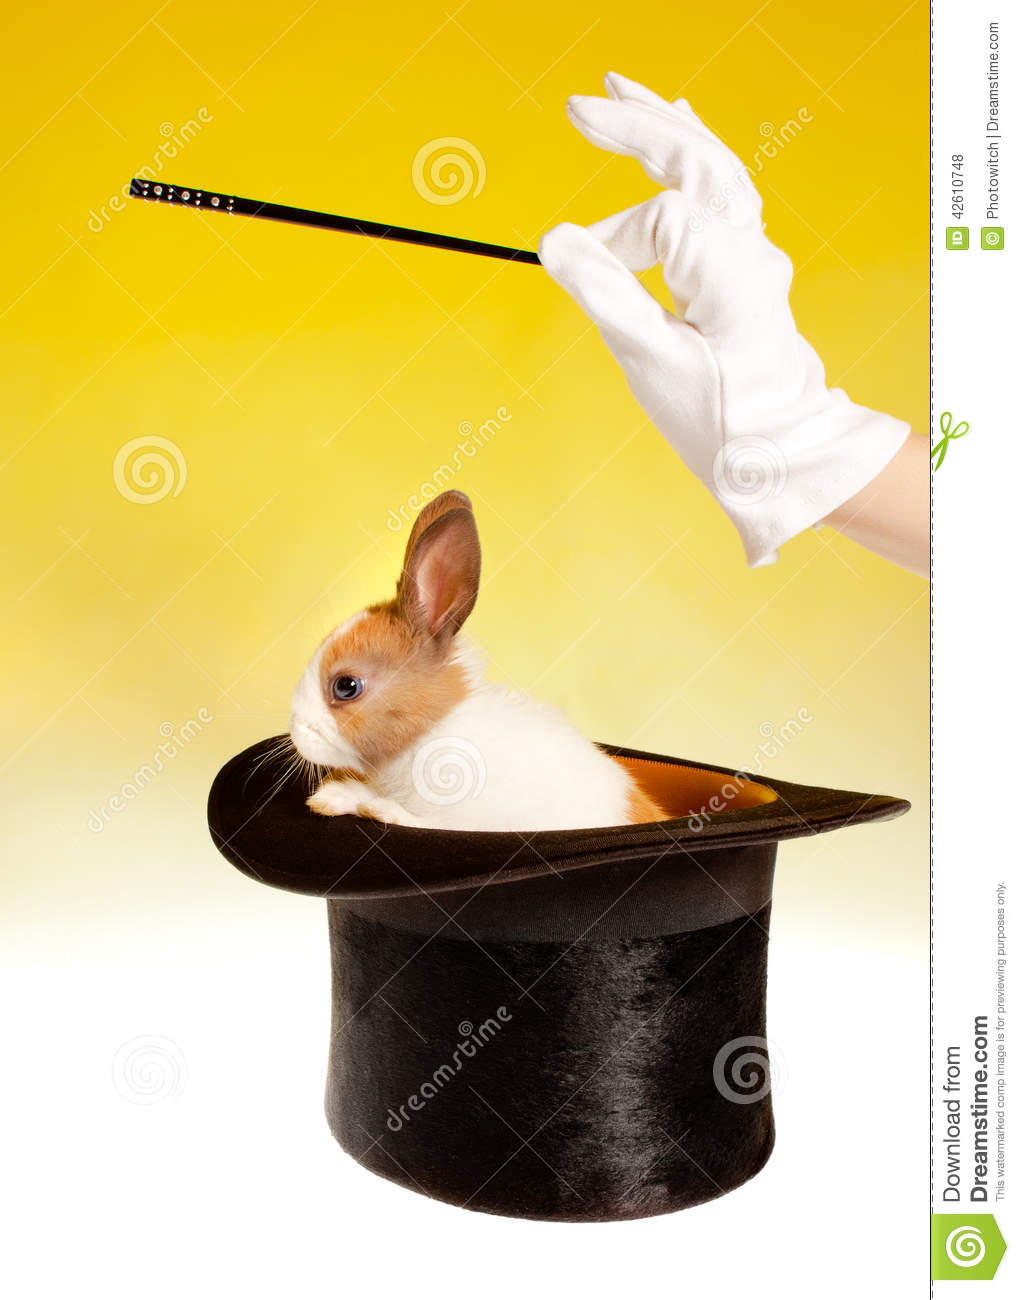 Magician And Rabbit Stock Photo - Image: 42610748